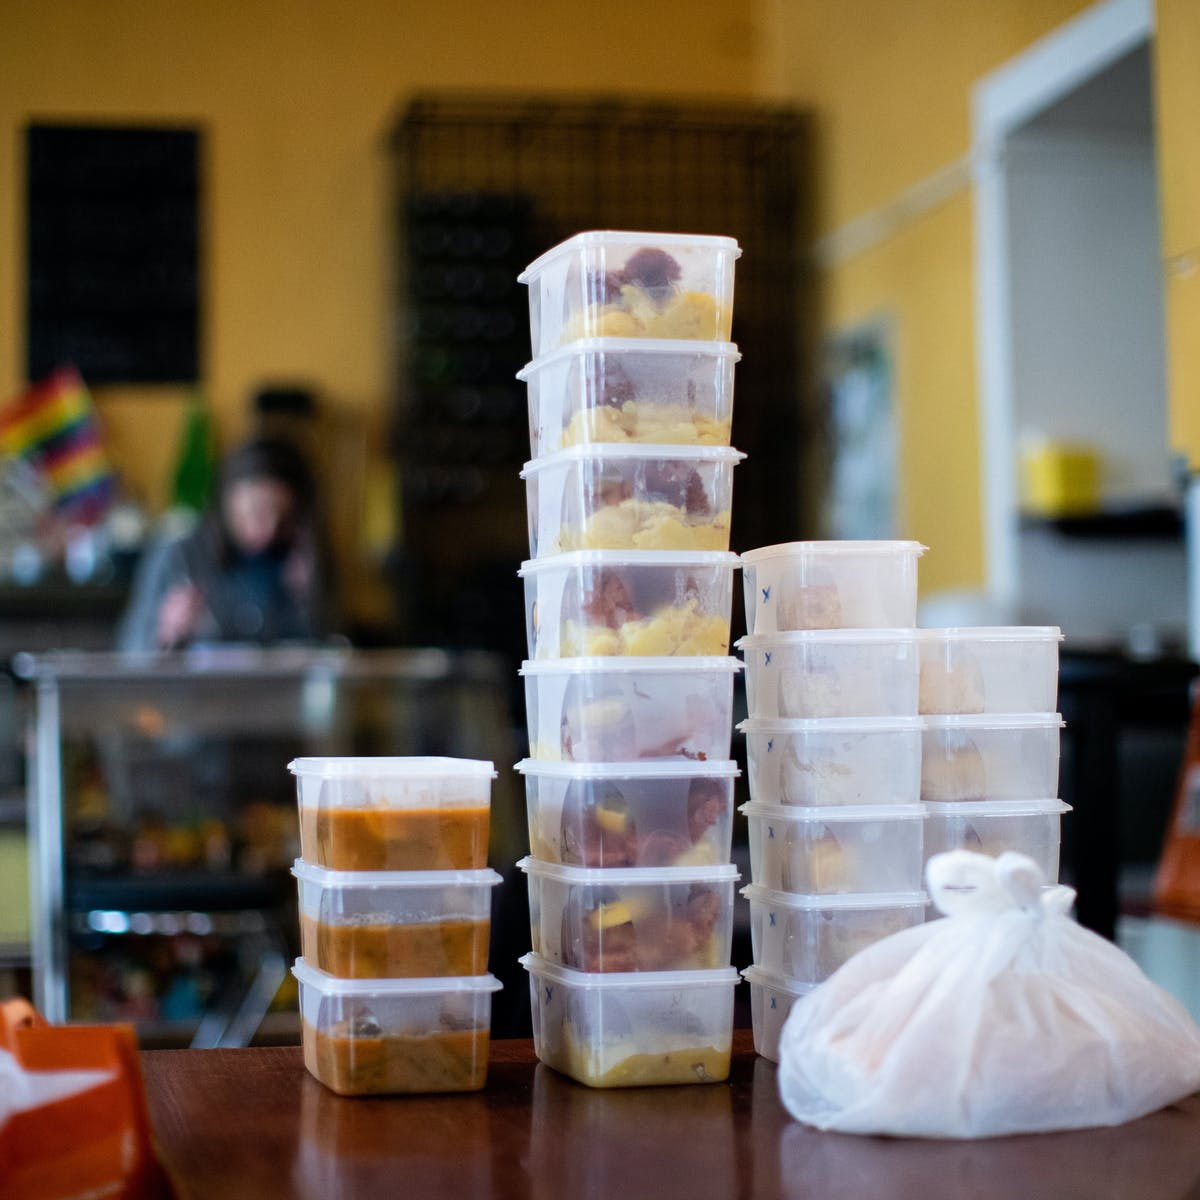 Using Lots Of Plastic Packaging During The Coronavirus Crisis You